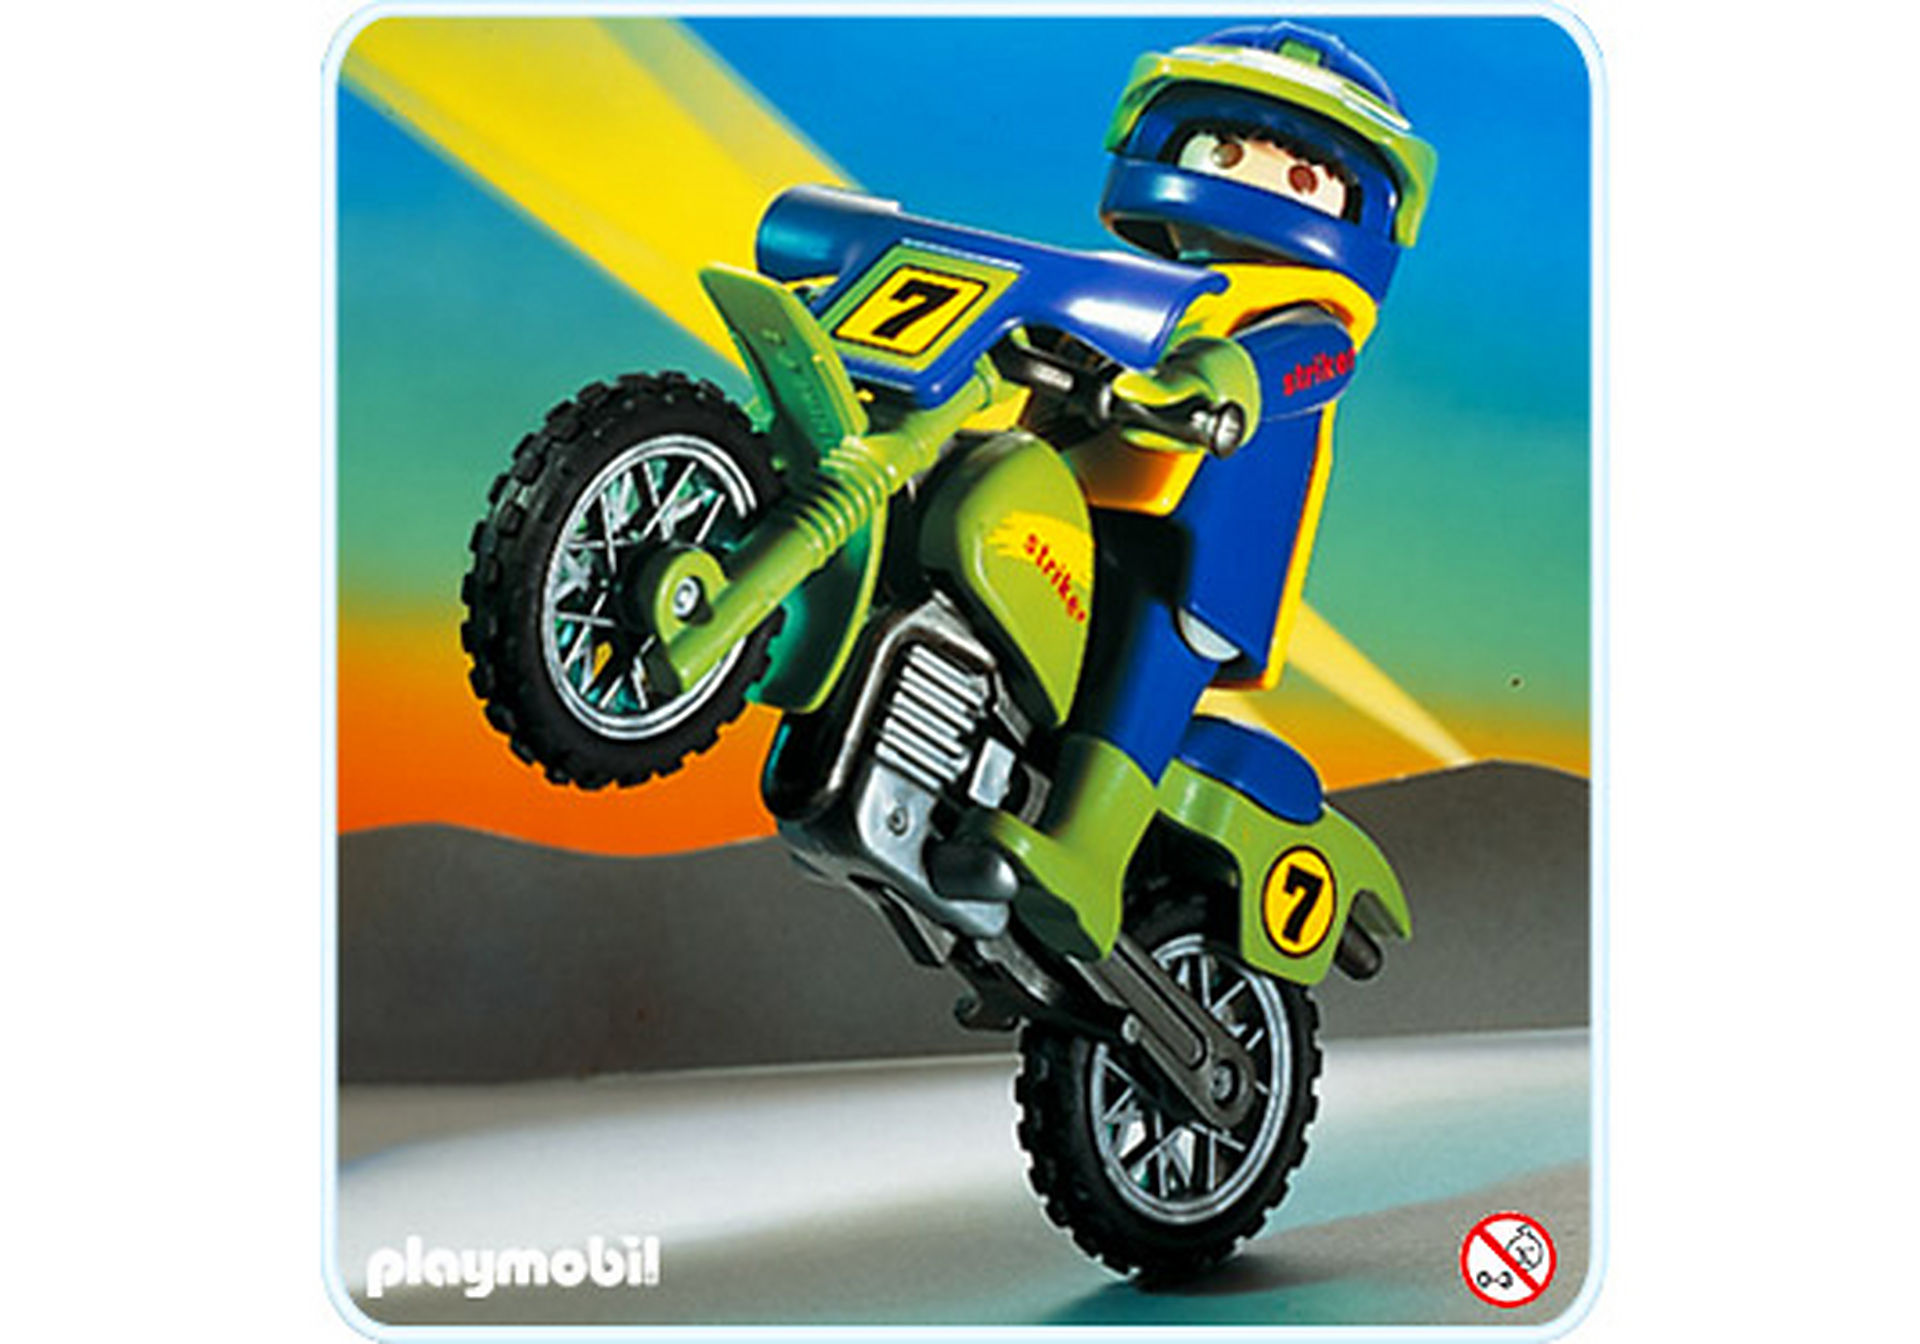 http://media.playmobil.com/i/playmobil/3698-A_product_detail/Moto trial